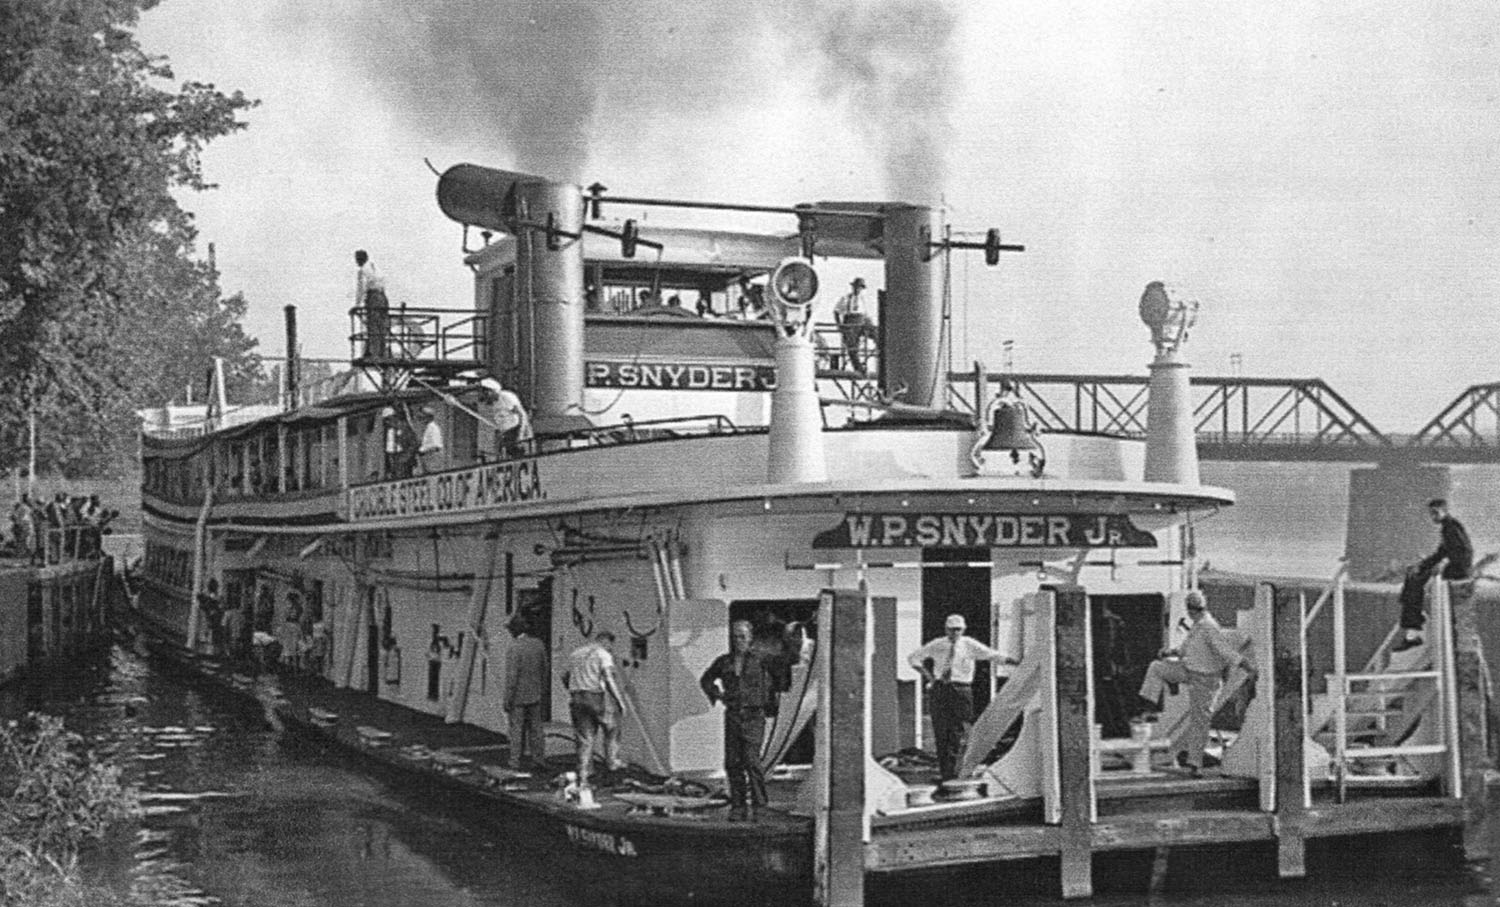 The W.P. Snyder Jr., arriving at Marietta in 1955.